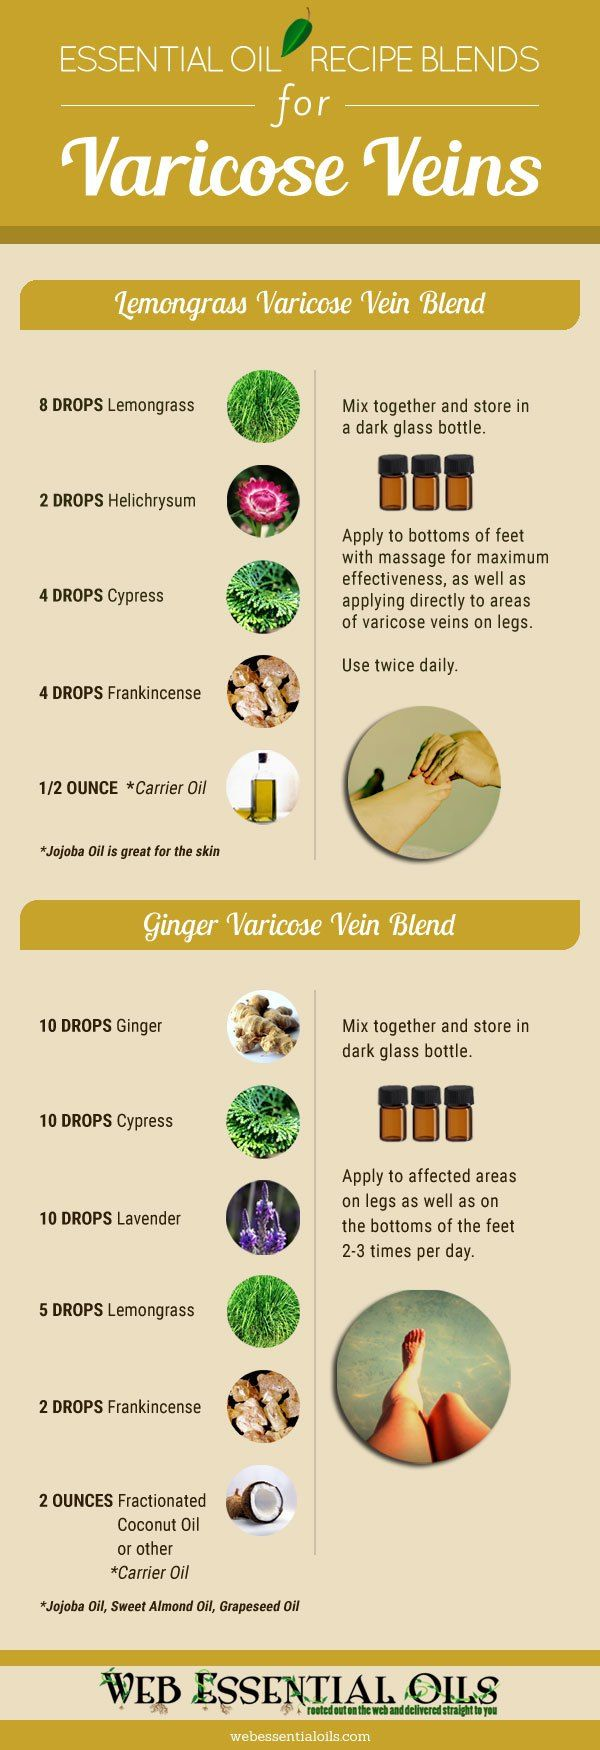 essential oils for varicose veins infographic